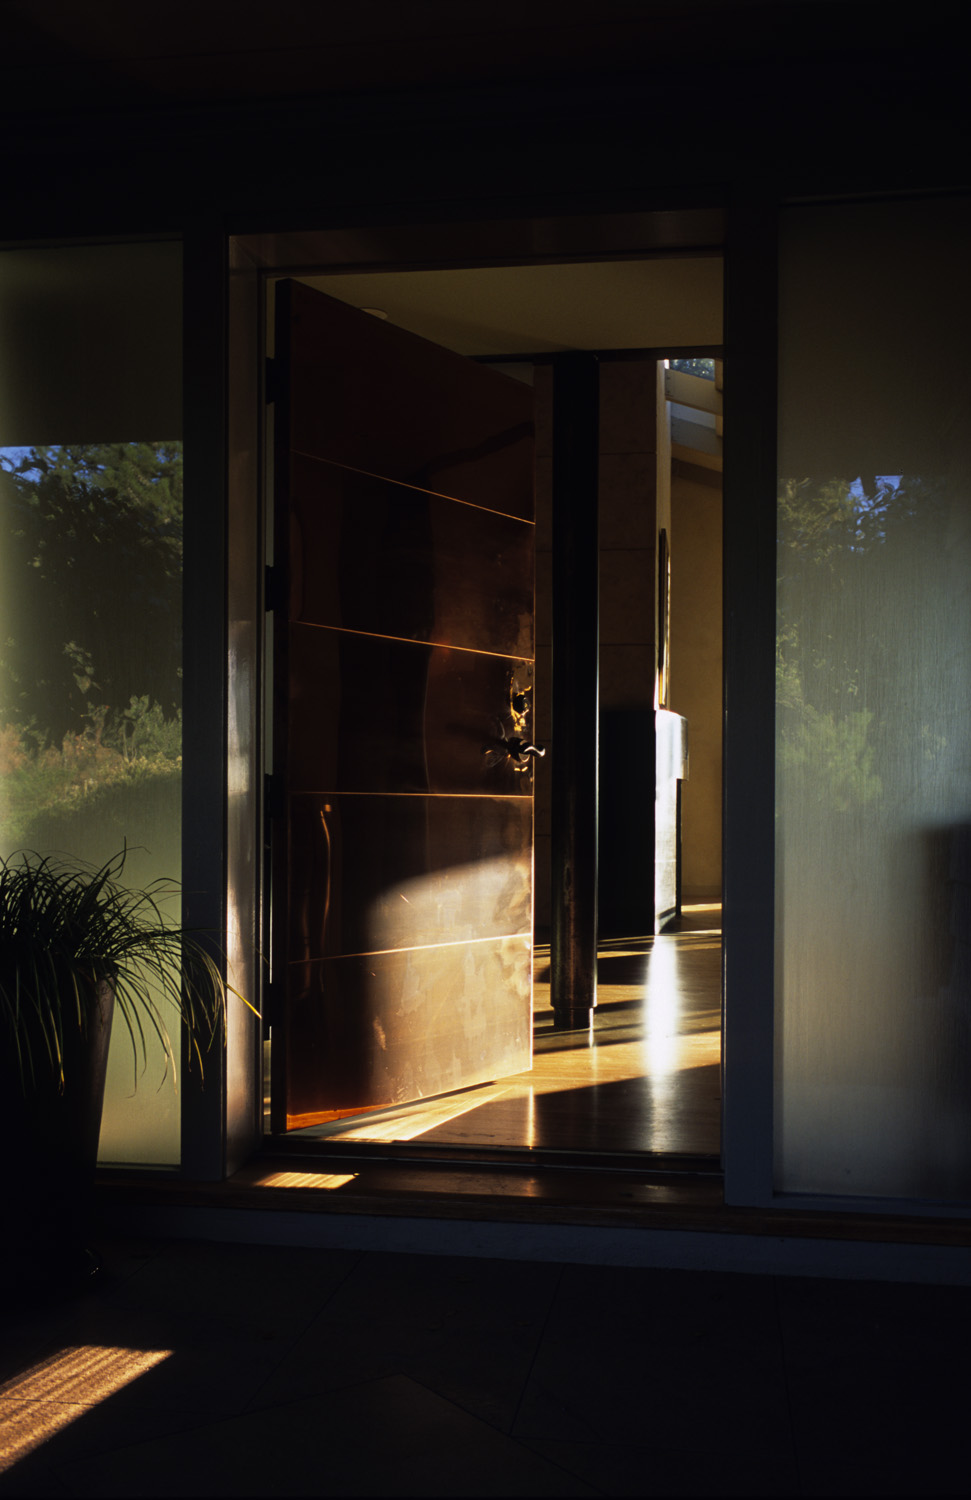 Copper-sheathed entry door flanked by translucent glass panels